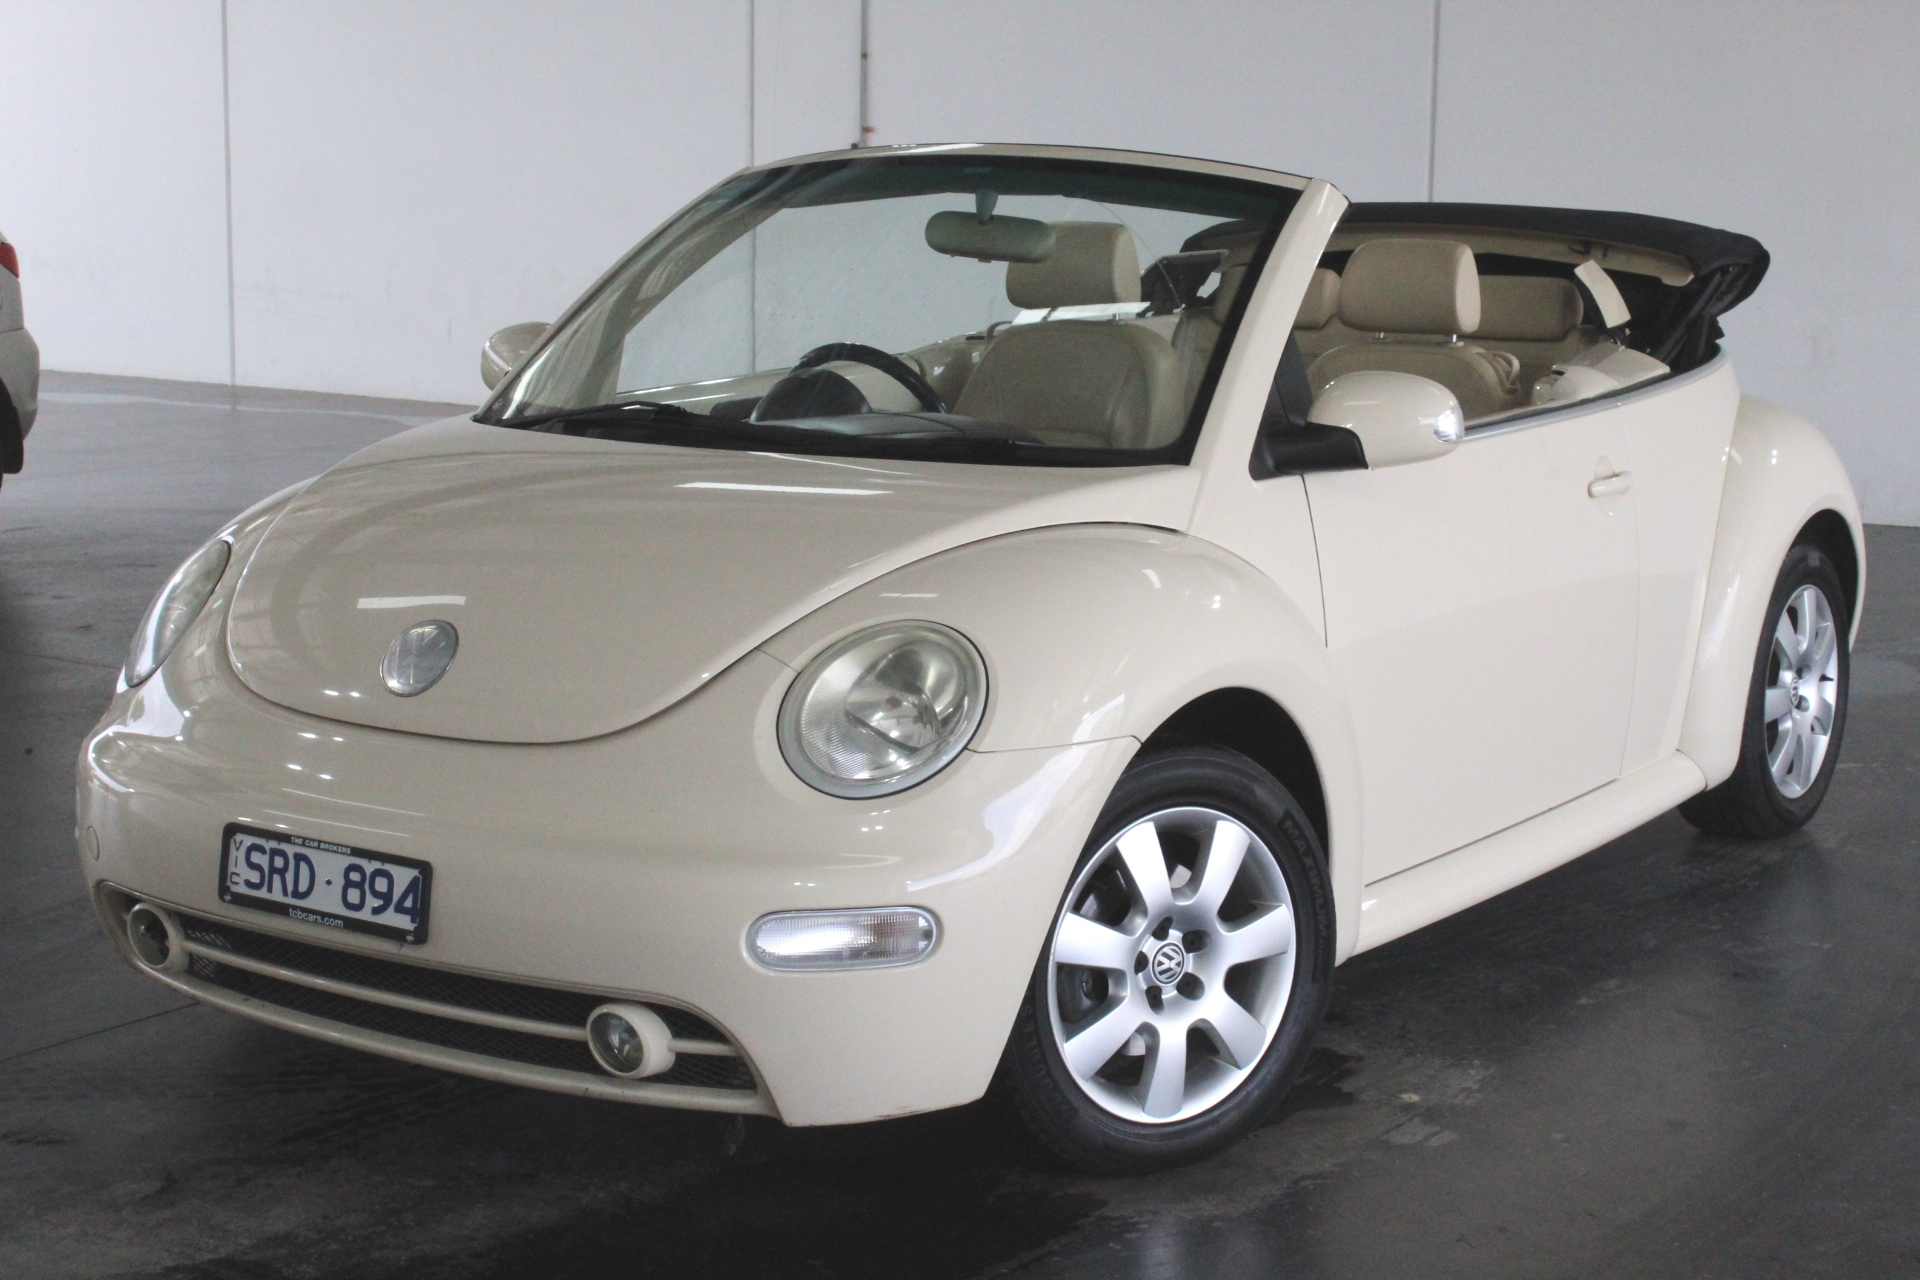 2003 Volkswagen New Beetle 2.0 Cabriolet A4 Manual Convertible